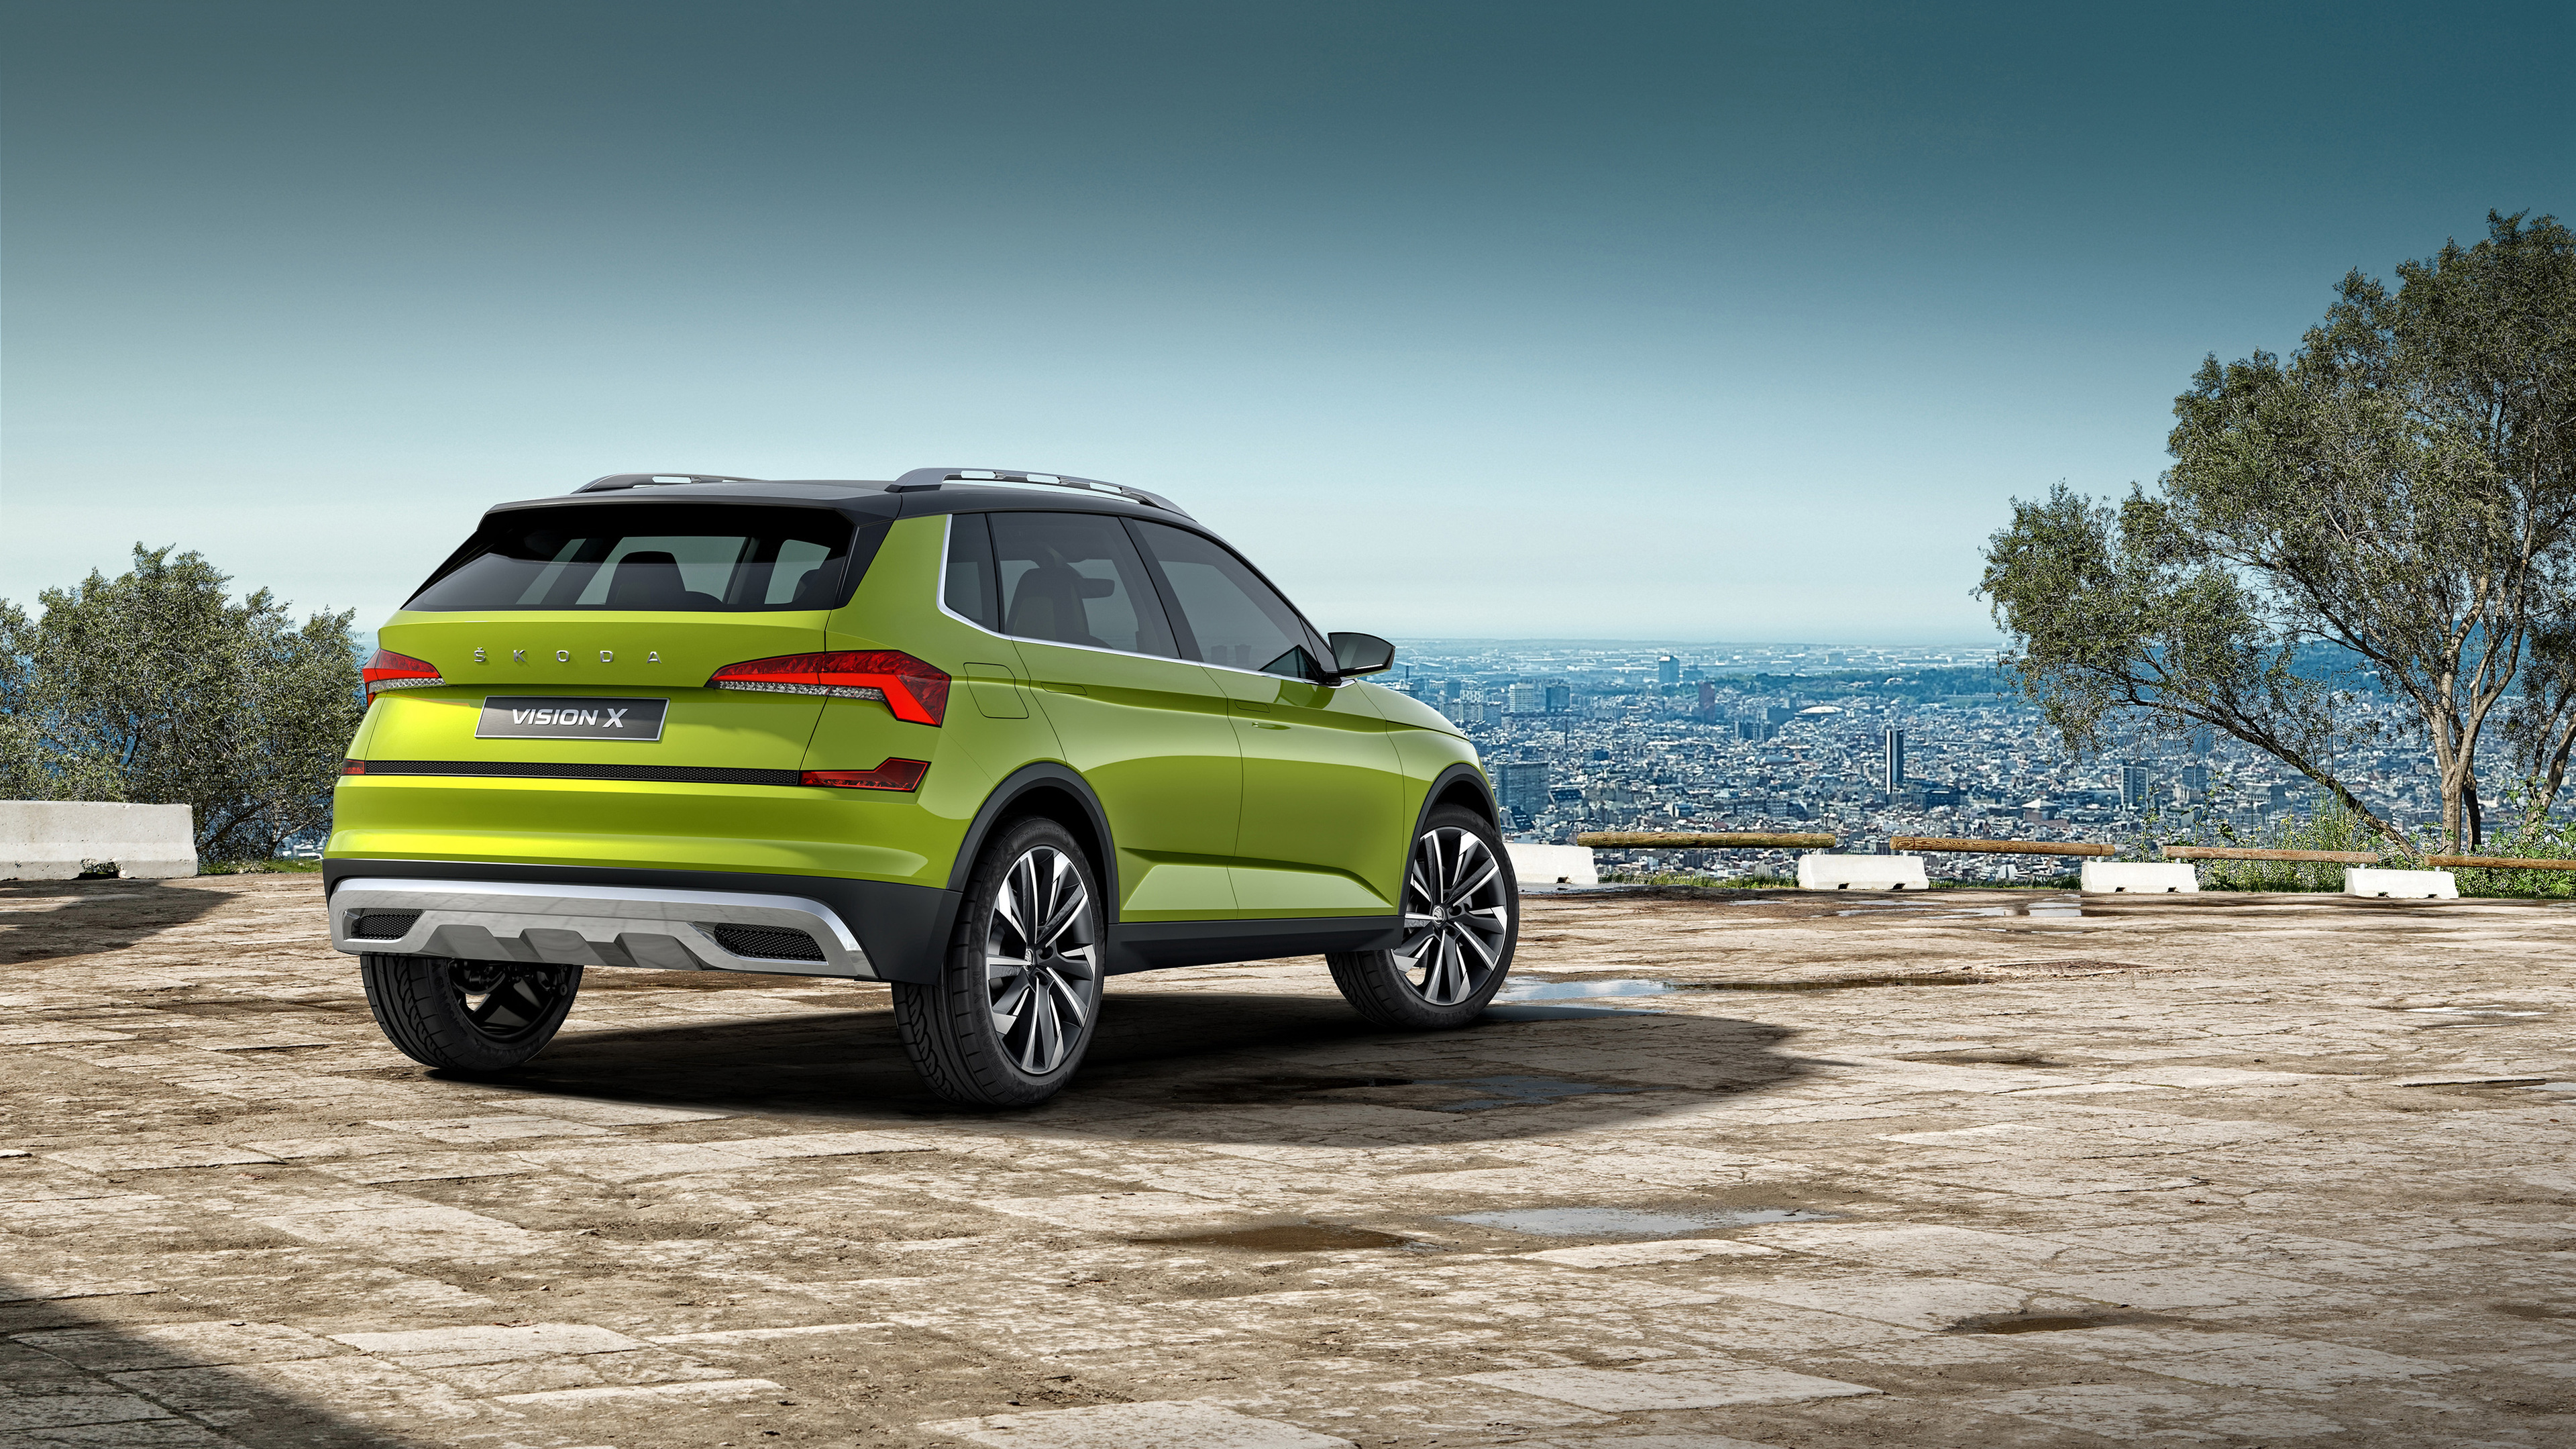 skoda vision x 2018 rear 1539110041 - Skoda Vision X 2018 Rear - skoda wallpapers, skoda vision x wallpapers, hd-wallpapers, cars wallpapers, 4k-wallpapers, 2018 cars wallpapers